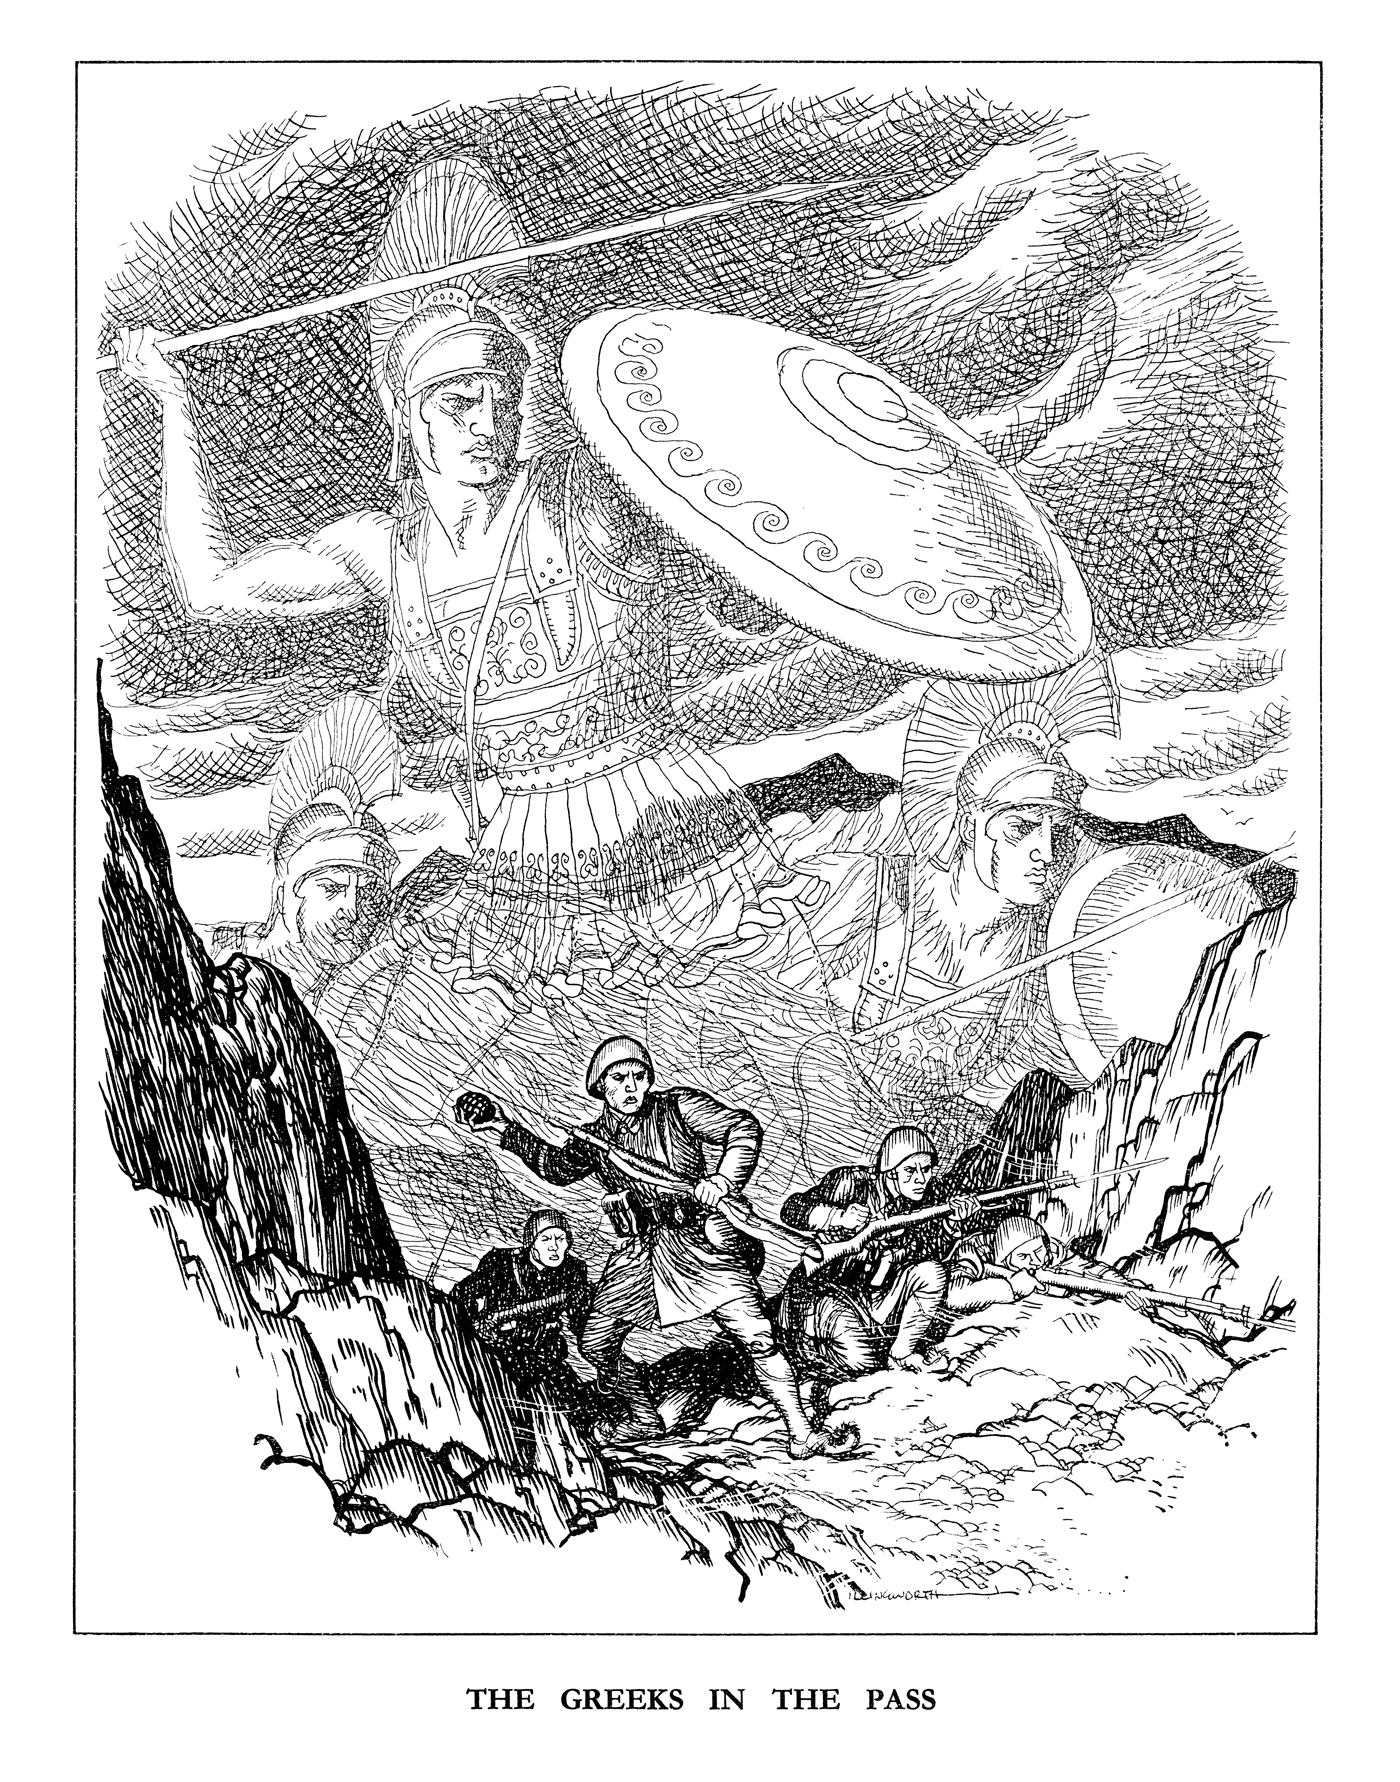 The Greeks in the Pass. Published in Punch 27 November 1940. As the Greek Army battles the Italians they are watched over by the heroic defenders of Thermopylae more than two thousand years before. By Leslie Illingworth © Punch Ltd